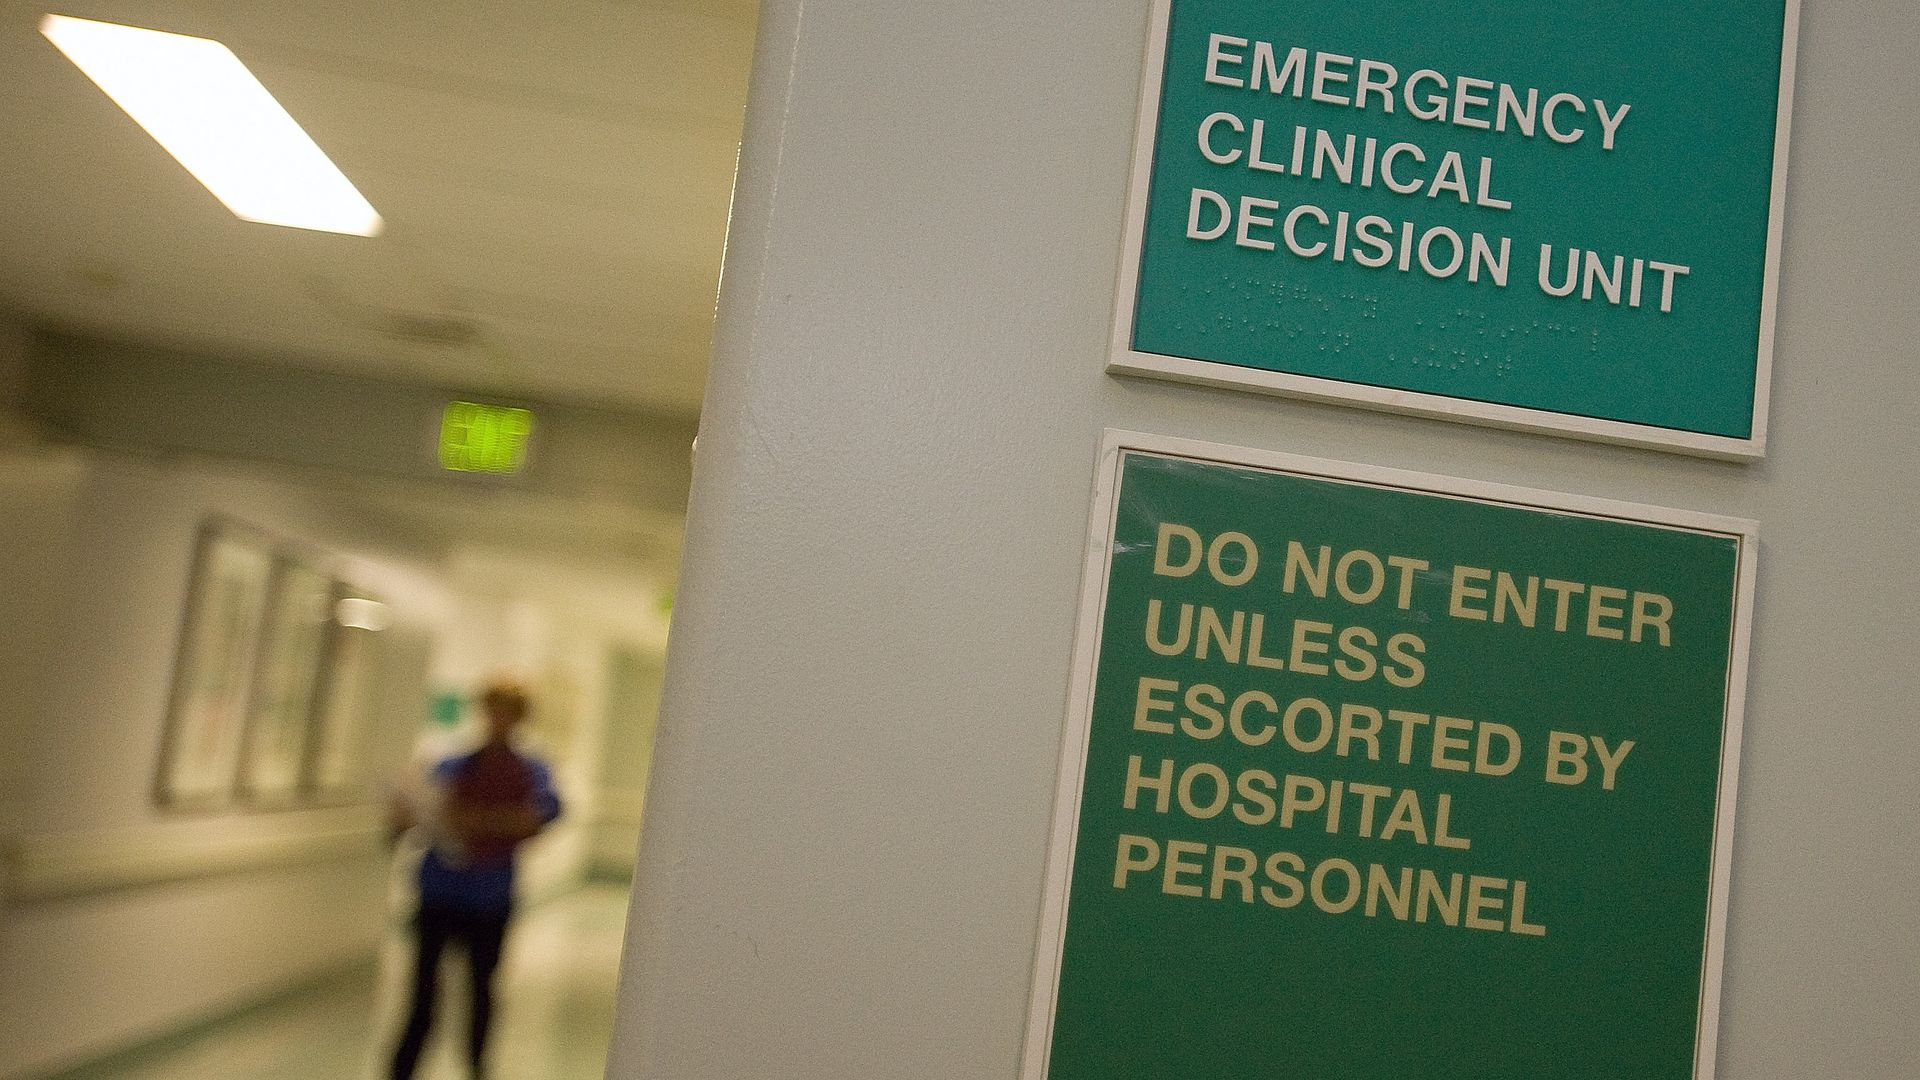 A sign for a hospital's clinical decision unit.